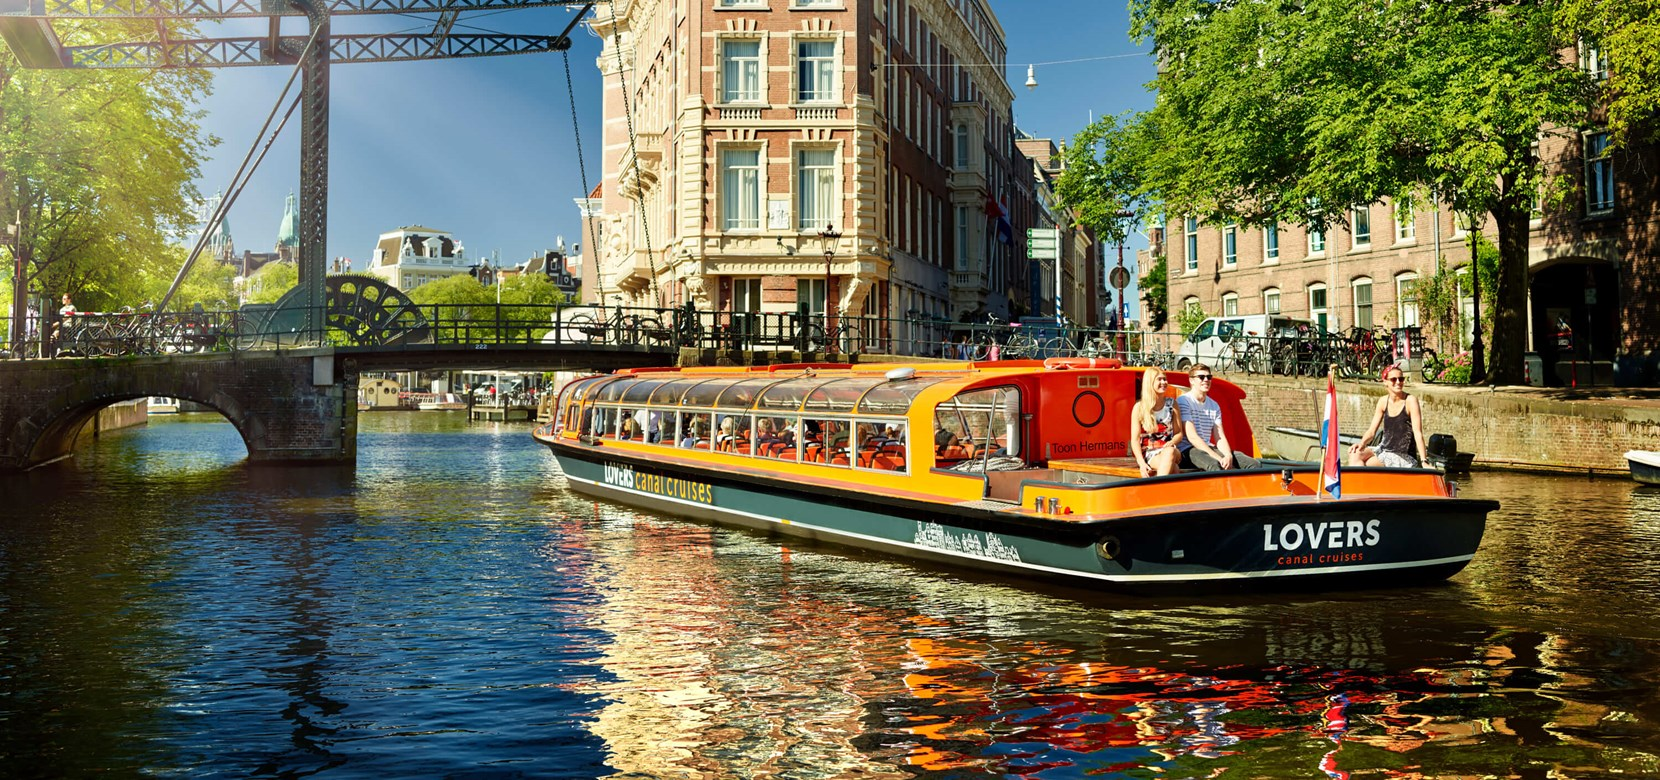 Canal cruise over the famous UNESCO Canals.